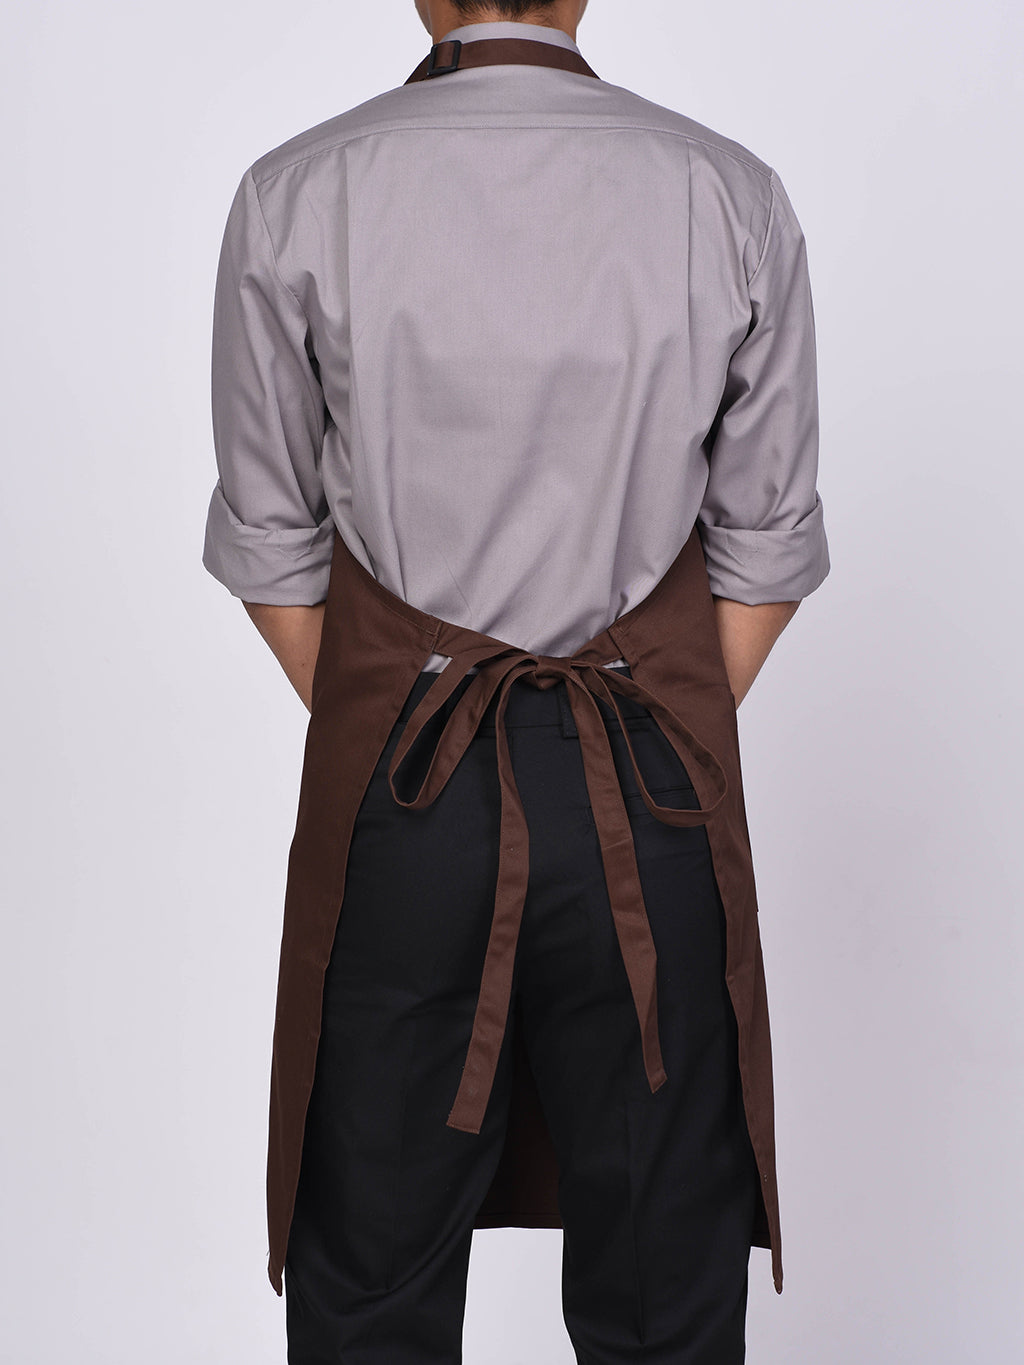 Dark Brown Bib Apron - Green Chef Wear